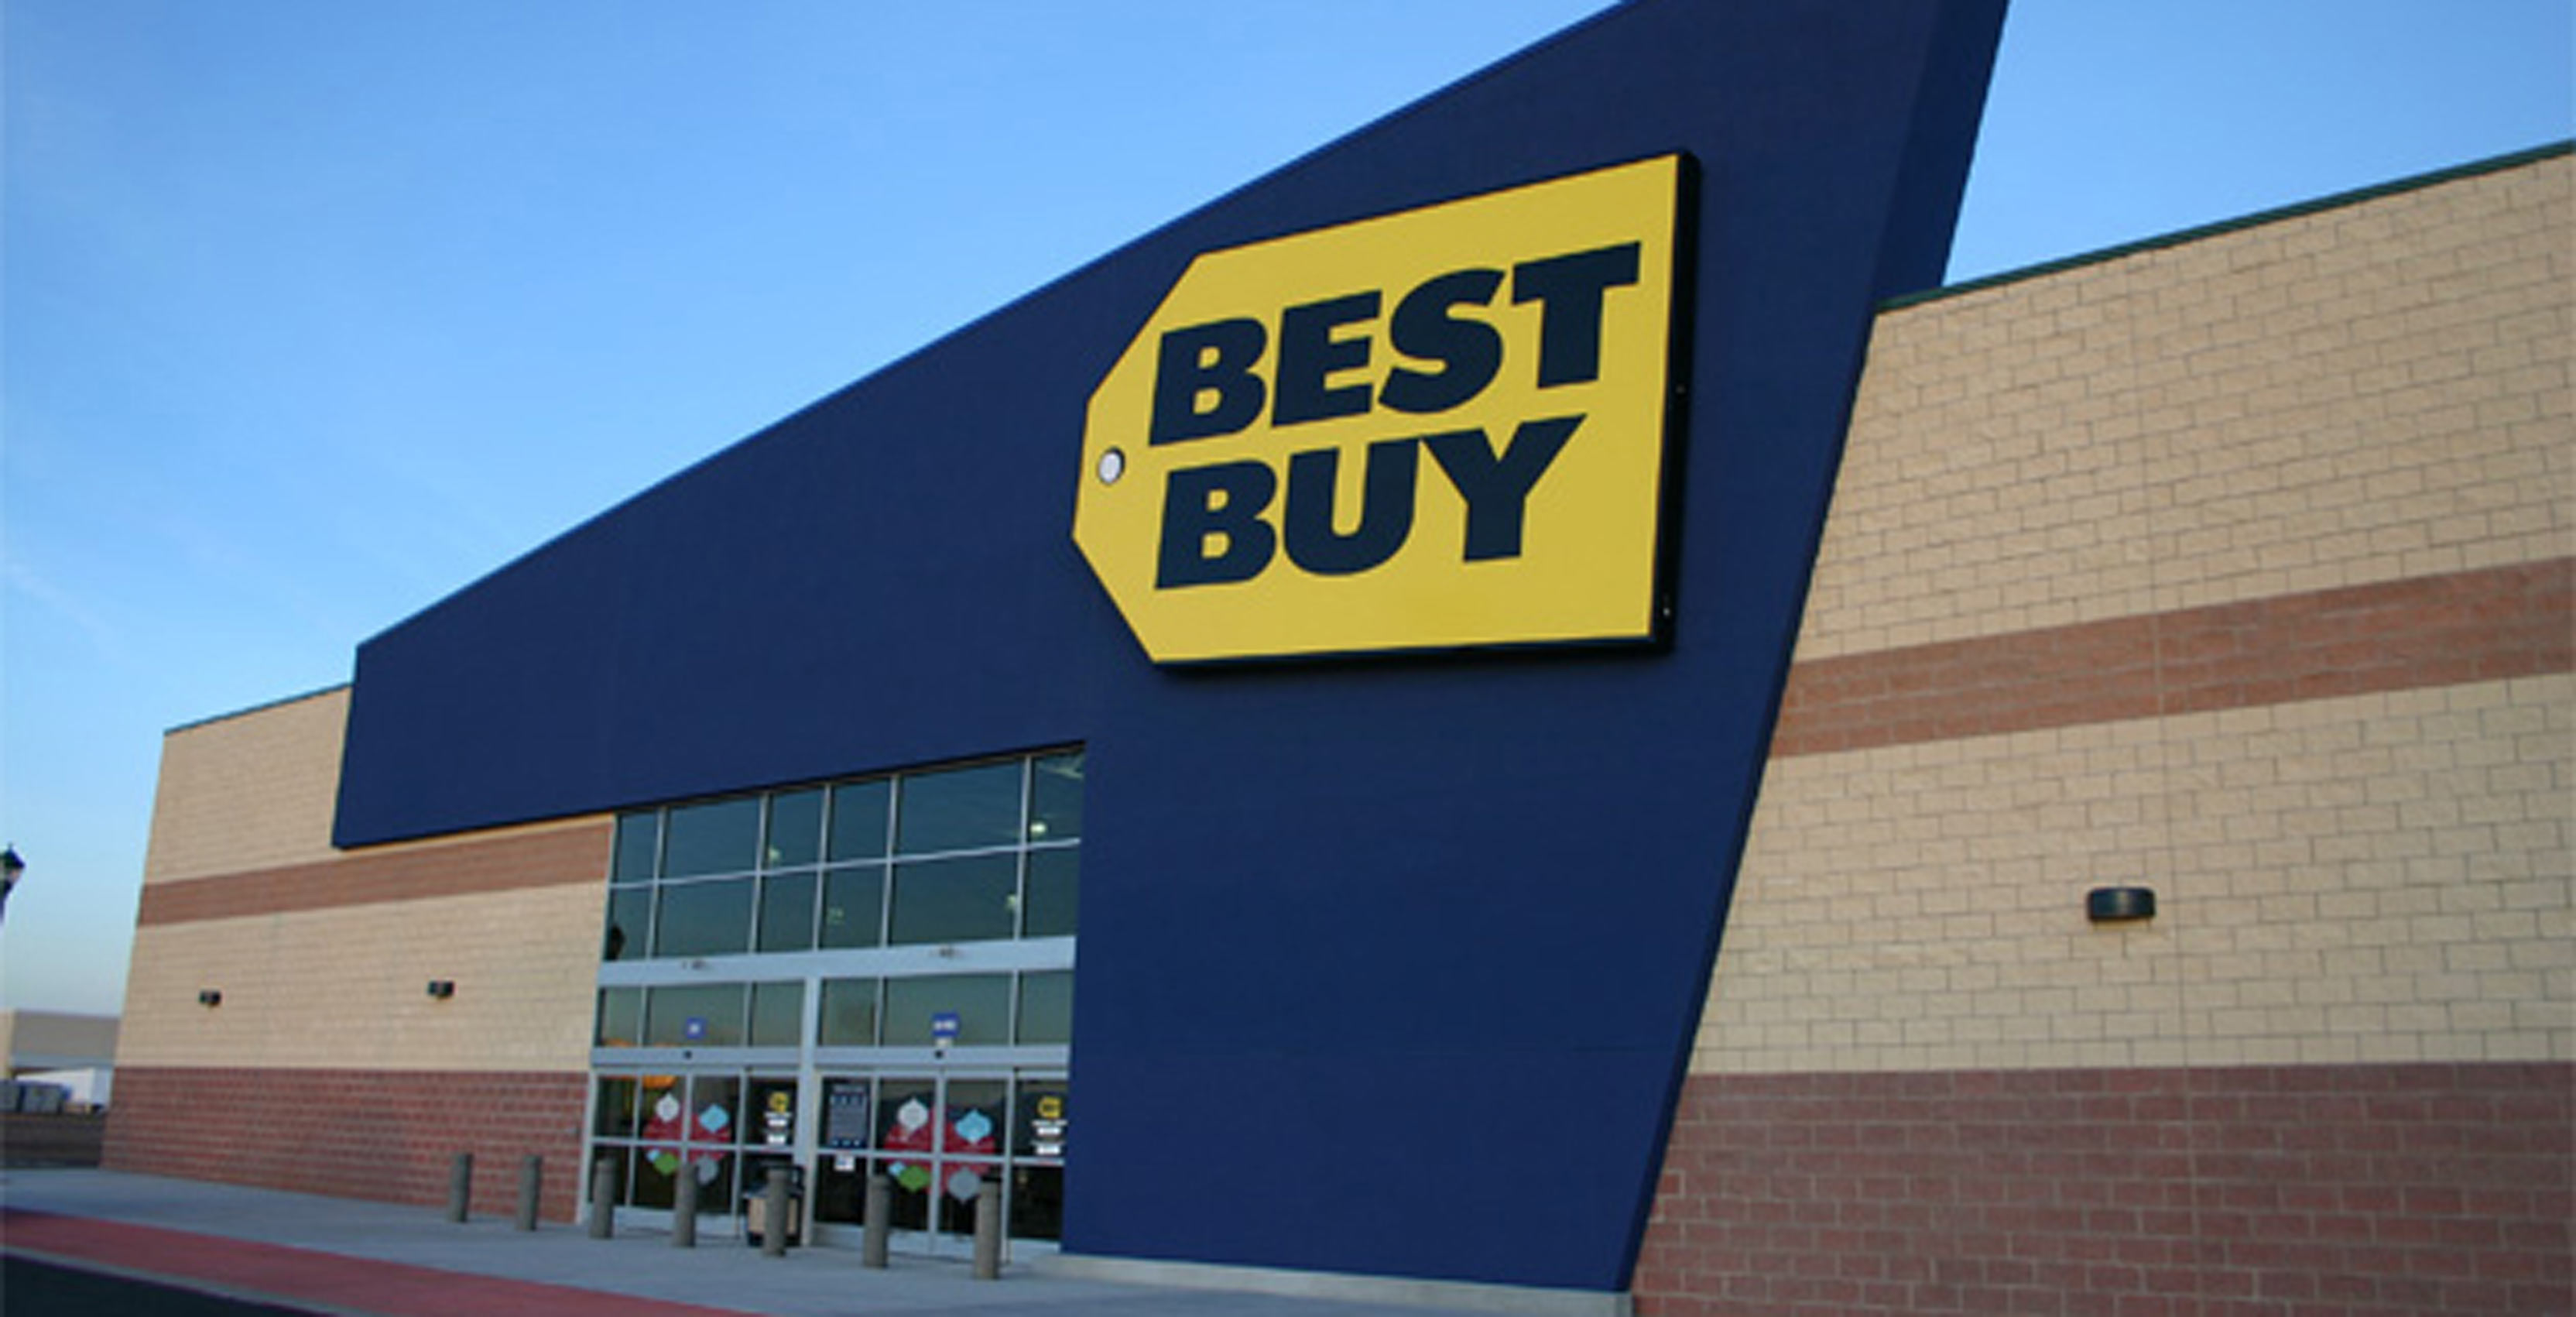 Best Buy Coupons, Promo Codes & Up to 1.0% Cash Back